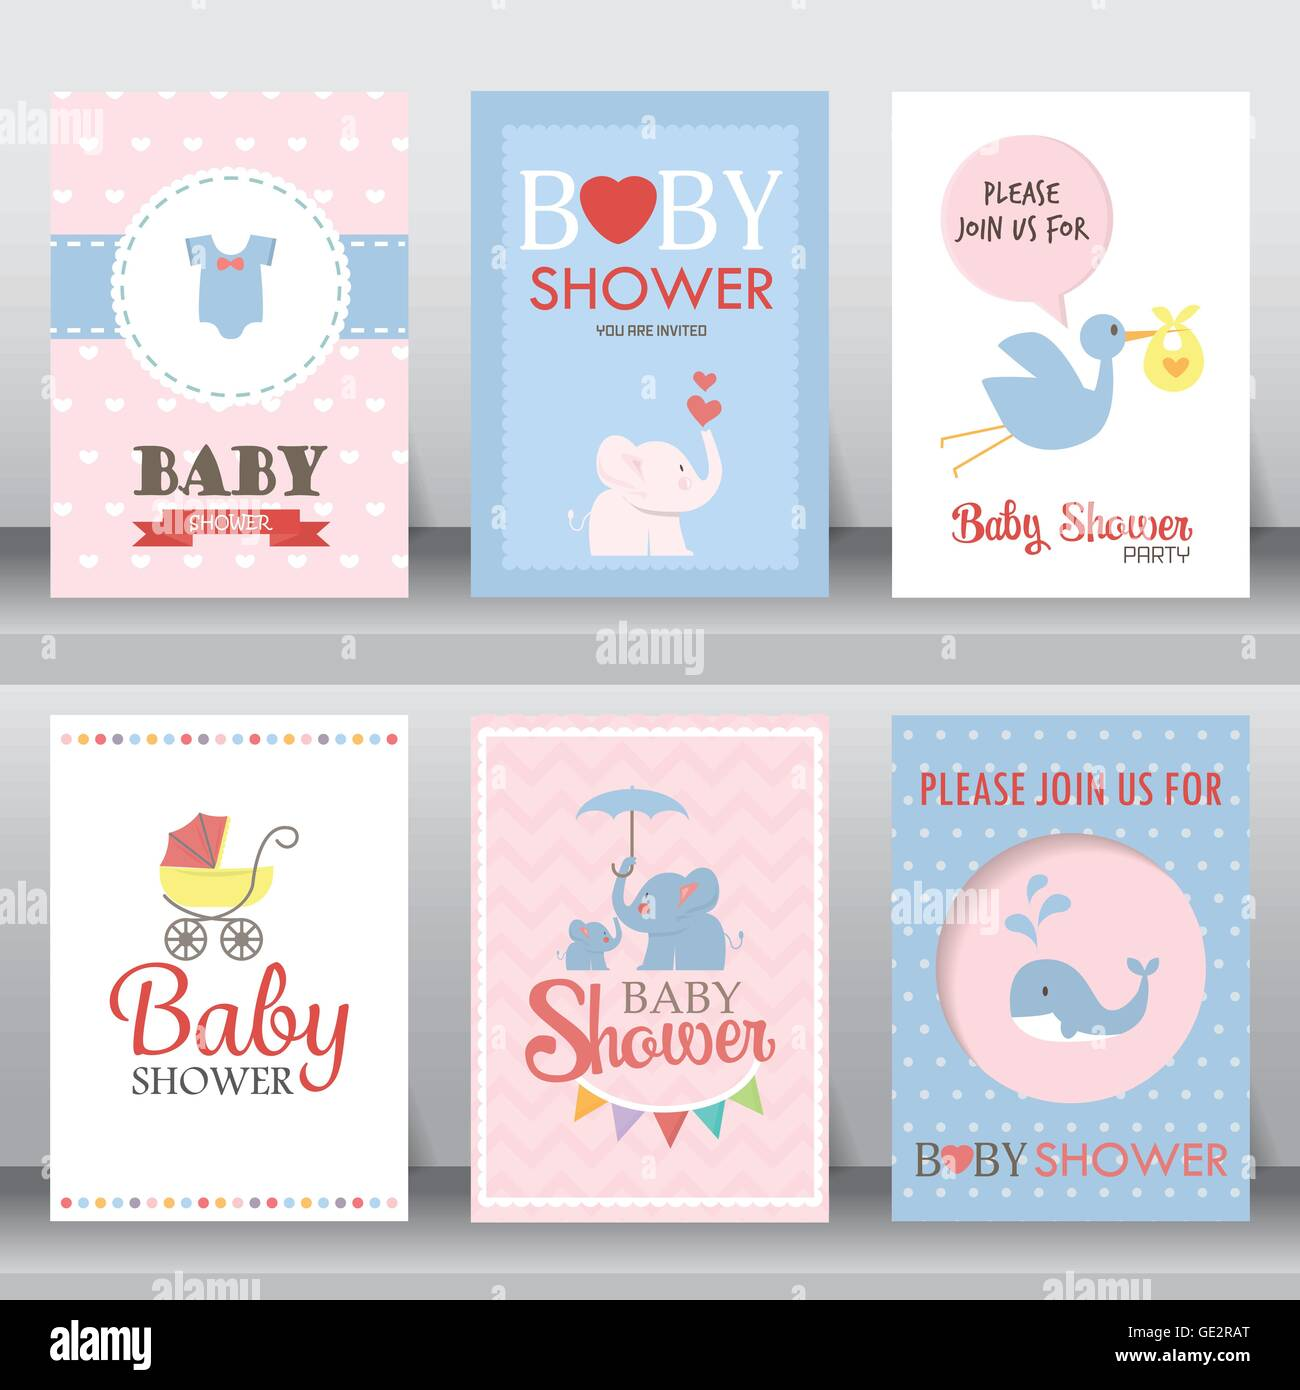 Baby Shower Karte Text.Baby Shower Party Greeting And Invitation Card Layout